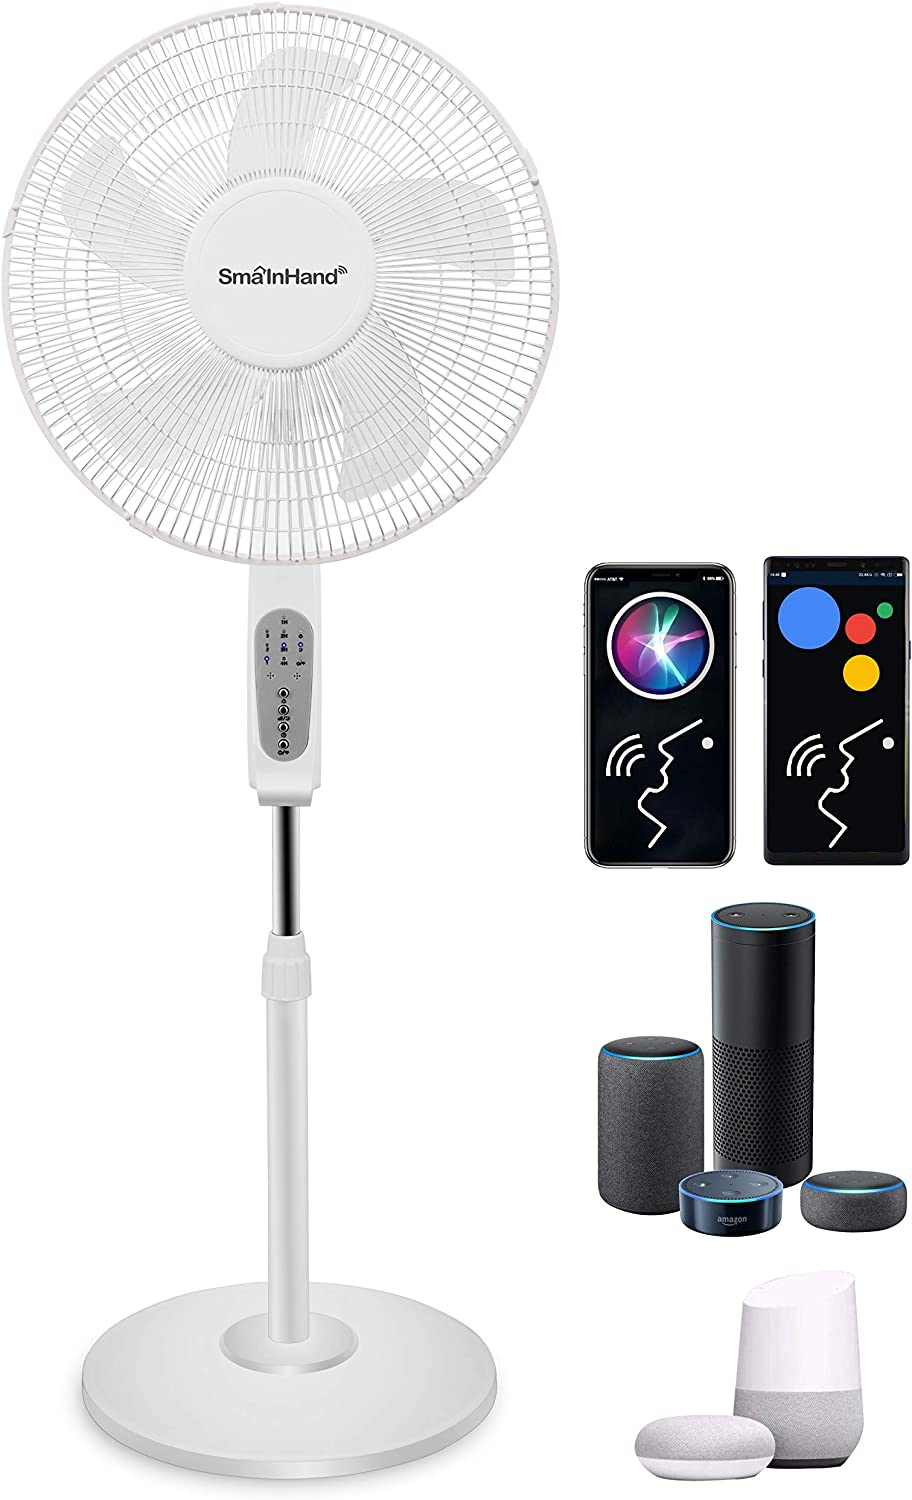 Fan, Phone Voice Control Oscillating Fan, Alexa Google Remote Control Floor Fan, WiFi Smart Bed Fans Oscillating, SmaInHand Stand Up Fans For Home, House Standing Fan, Pedestal Fans For Bedroom Cooling and Sleep, Room Quiet Electric Shop High Velocity Rotating Tall Large Big Air Fan